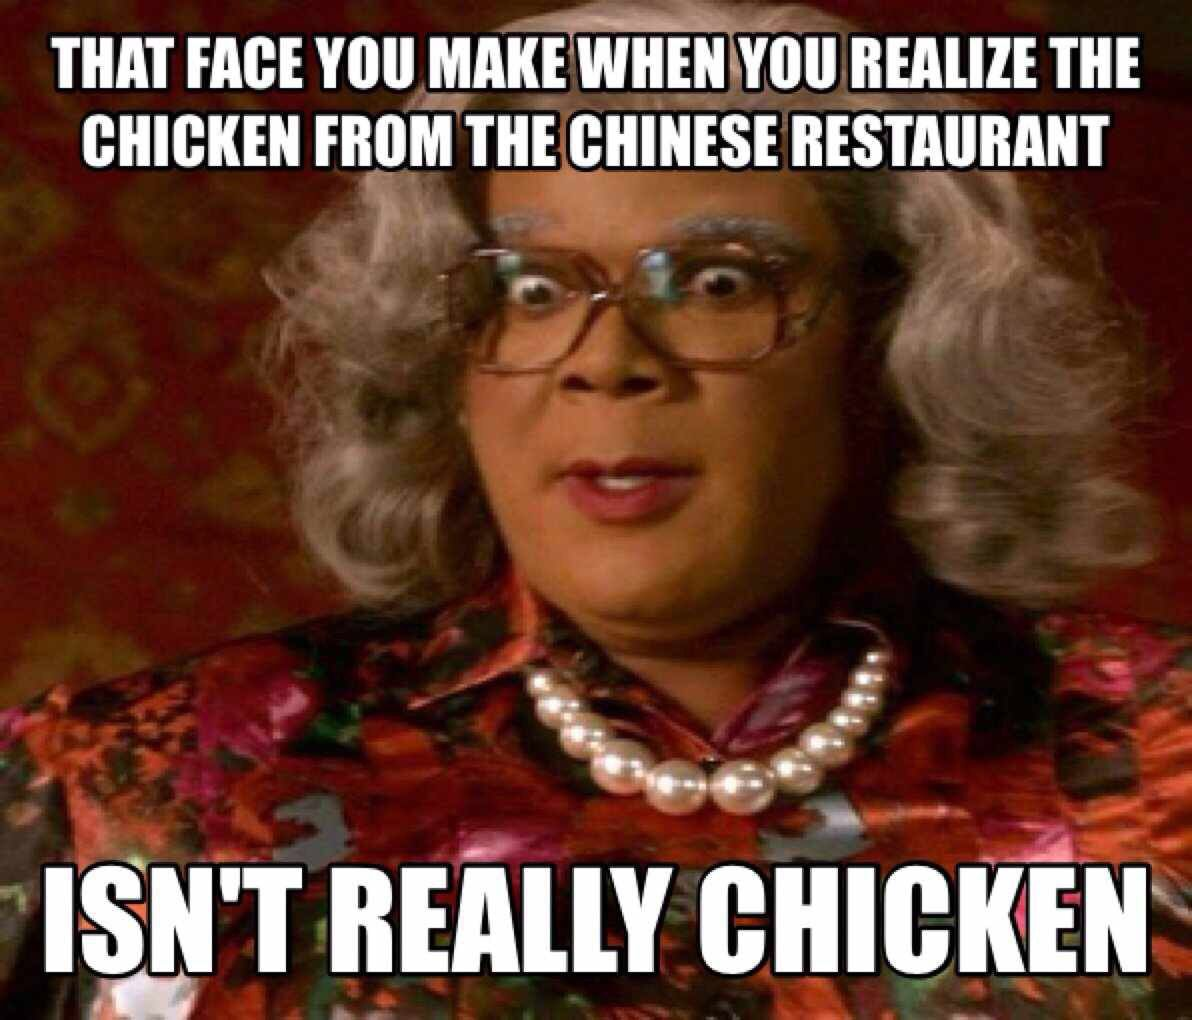 58a60a7dad3af849bbf5c8531e407878 pin by april on humor pinterest madea quotes, funny quotes and